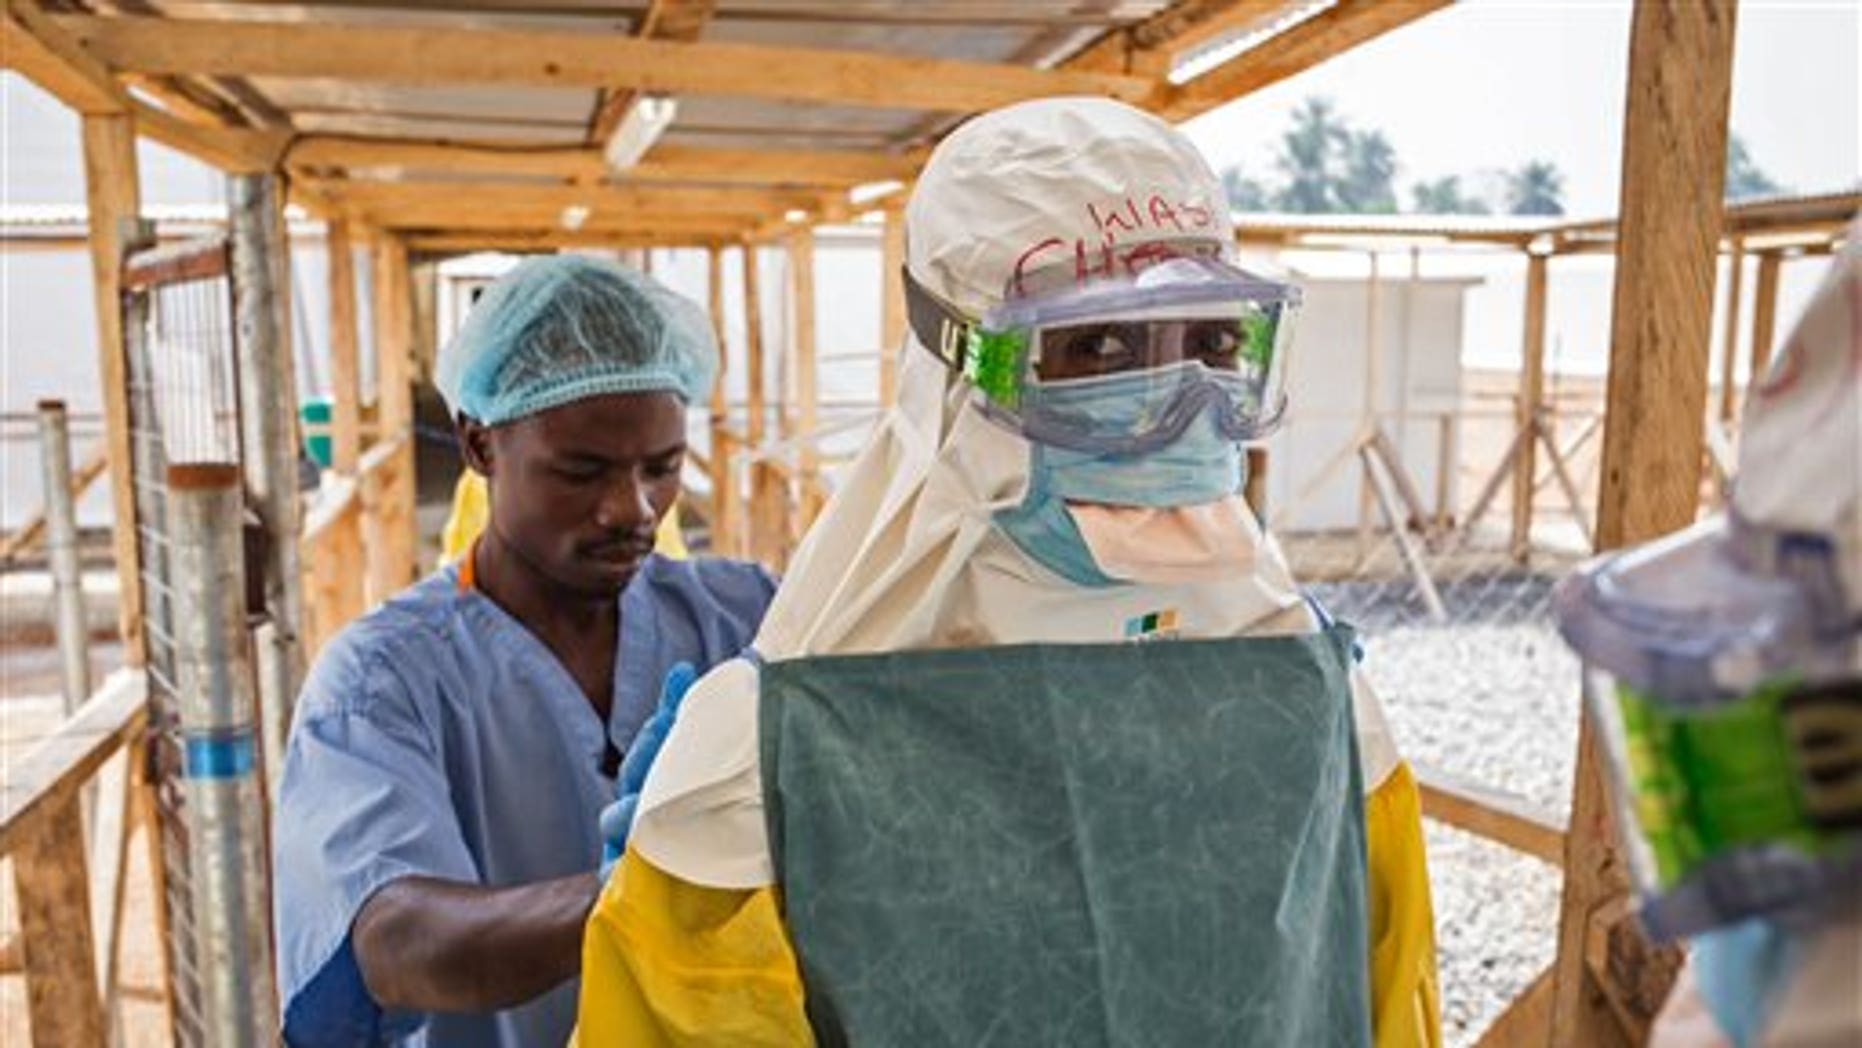 In this photo taken on Monday, March 2,  2015, a health care worker prepares a colleague's virus protective gear before entering a high risk zone at an Ebola virus clinic operated by the International Medical Corps in Makeni, Sierra Leone. (AP Photo/ Michael Duff)